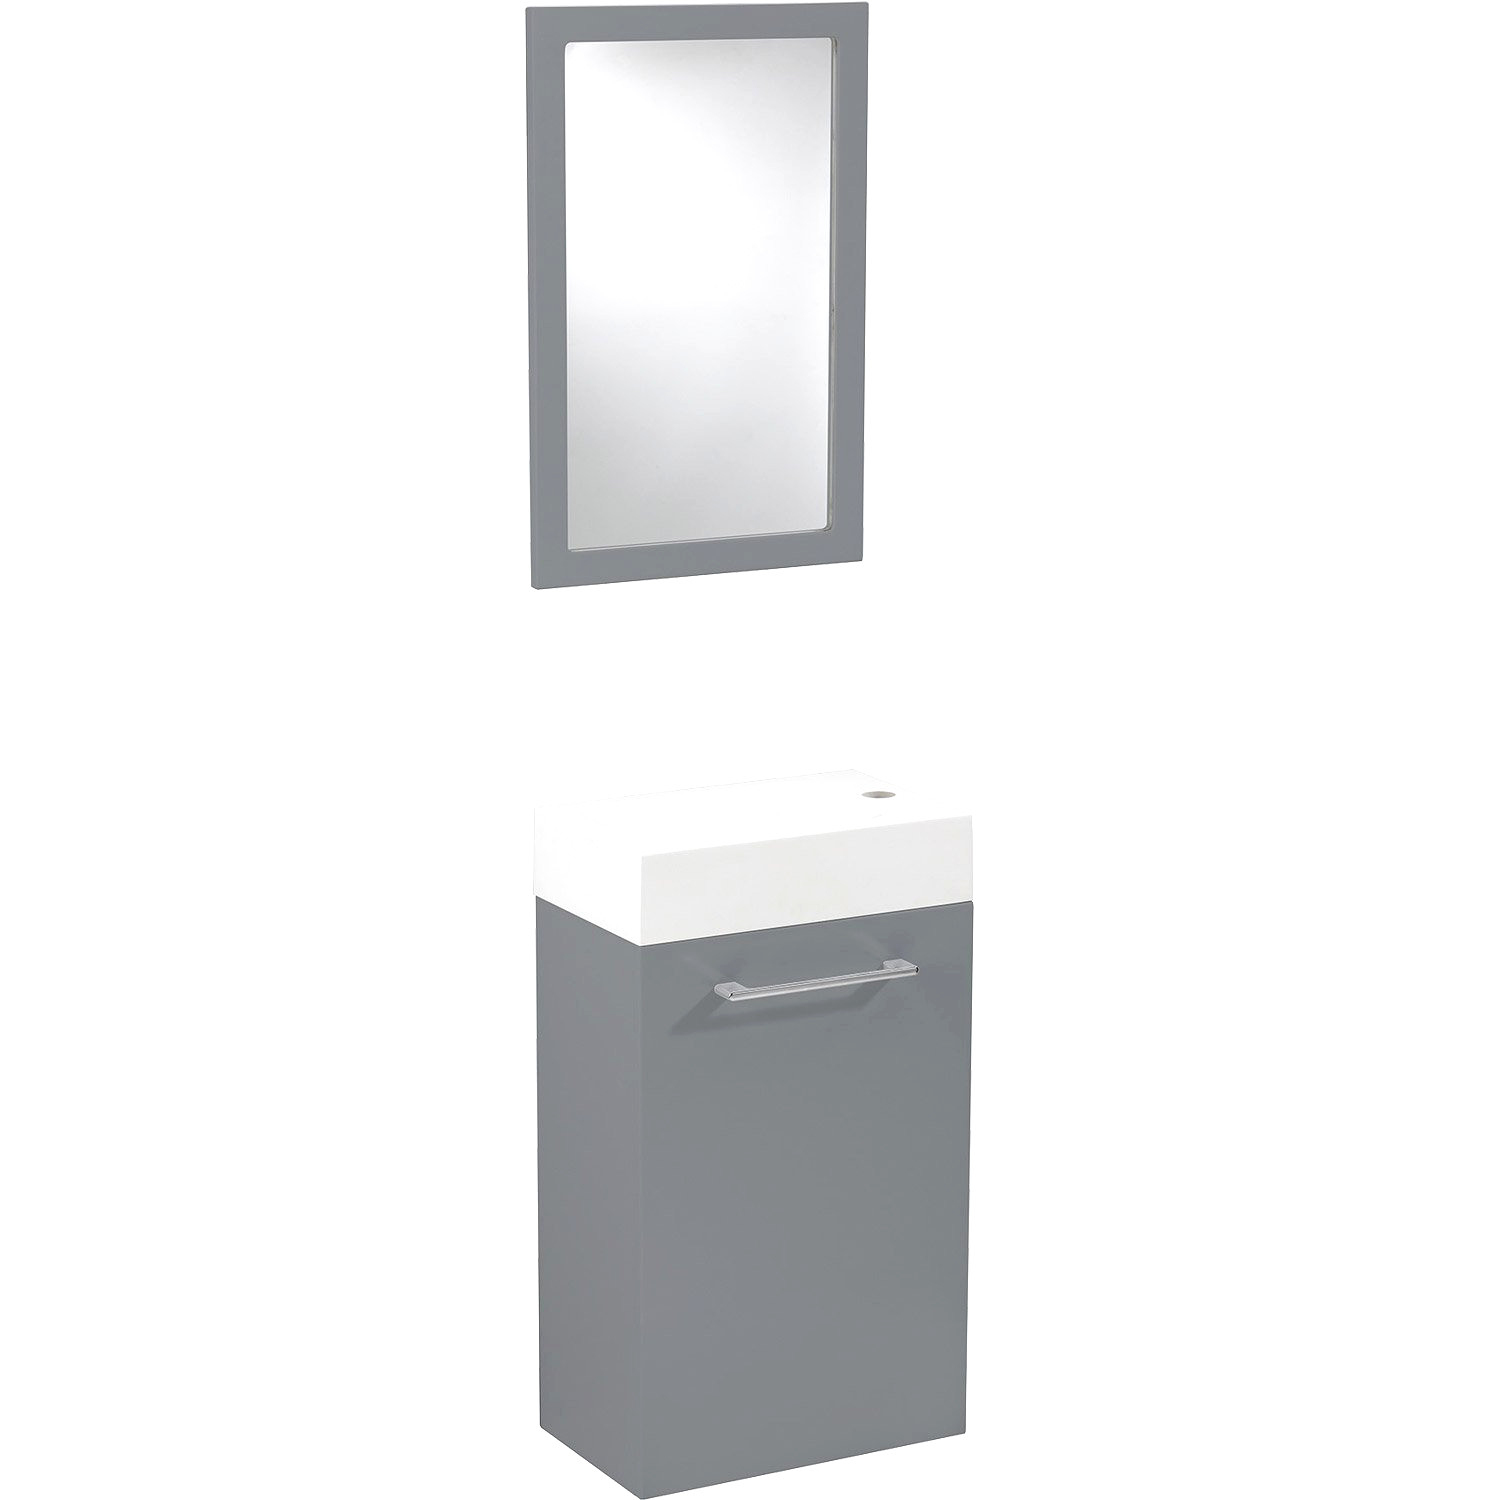 Serviteur Wc Ikea Luxe Photos Balai Wc Ikea Excellent Good Good Armoire De toilette Ikea En Ce